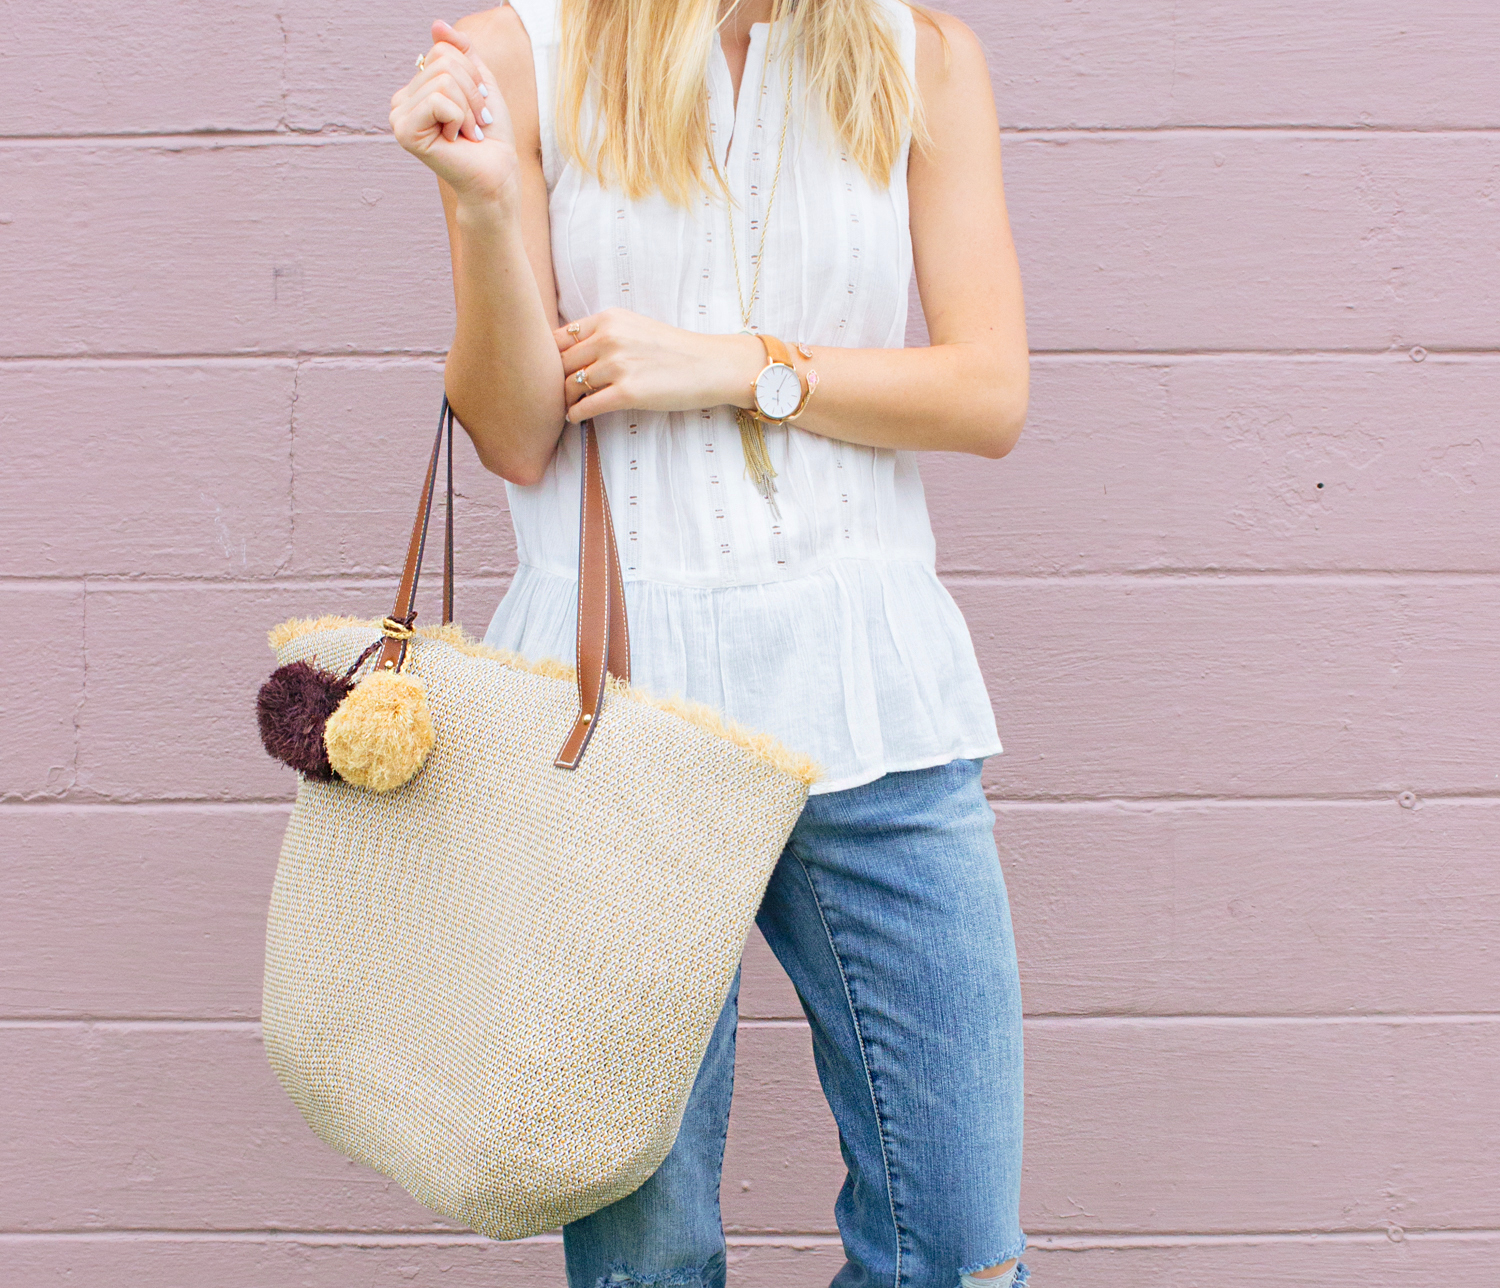 livvyland-blog-olivia-watson-caslon-nordstrom-boyfriend-jeans-white-eyelet-drop-waist-tank-top-beach-bag-tote-kendra-scott-rayne-necklace-prada-cateye-sunglasses-austin-texas-fashion-blogger-4